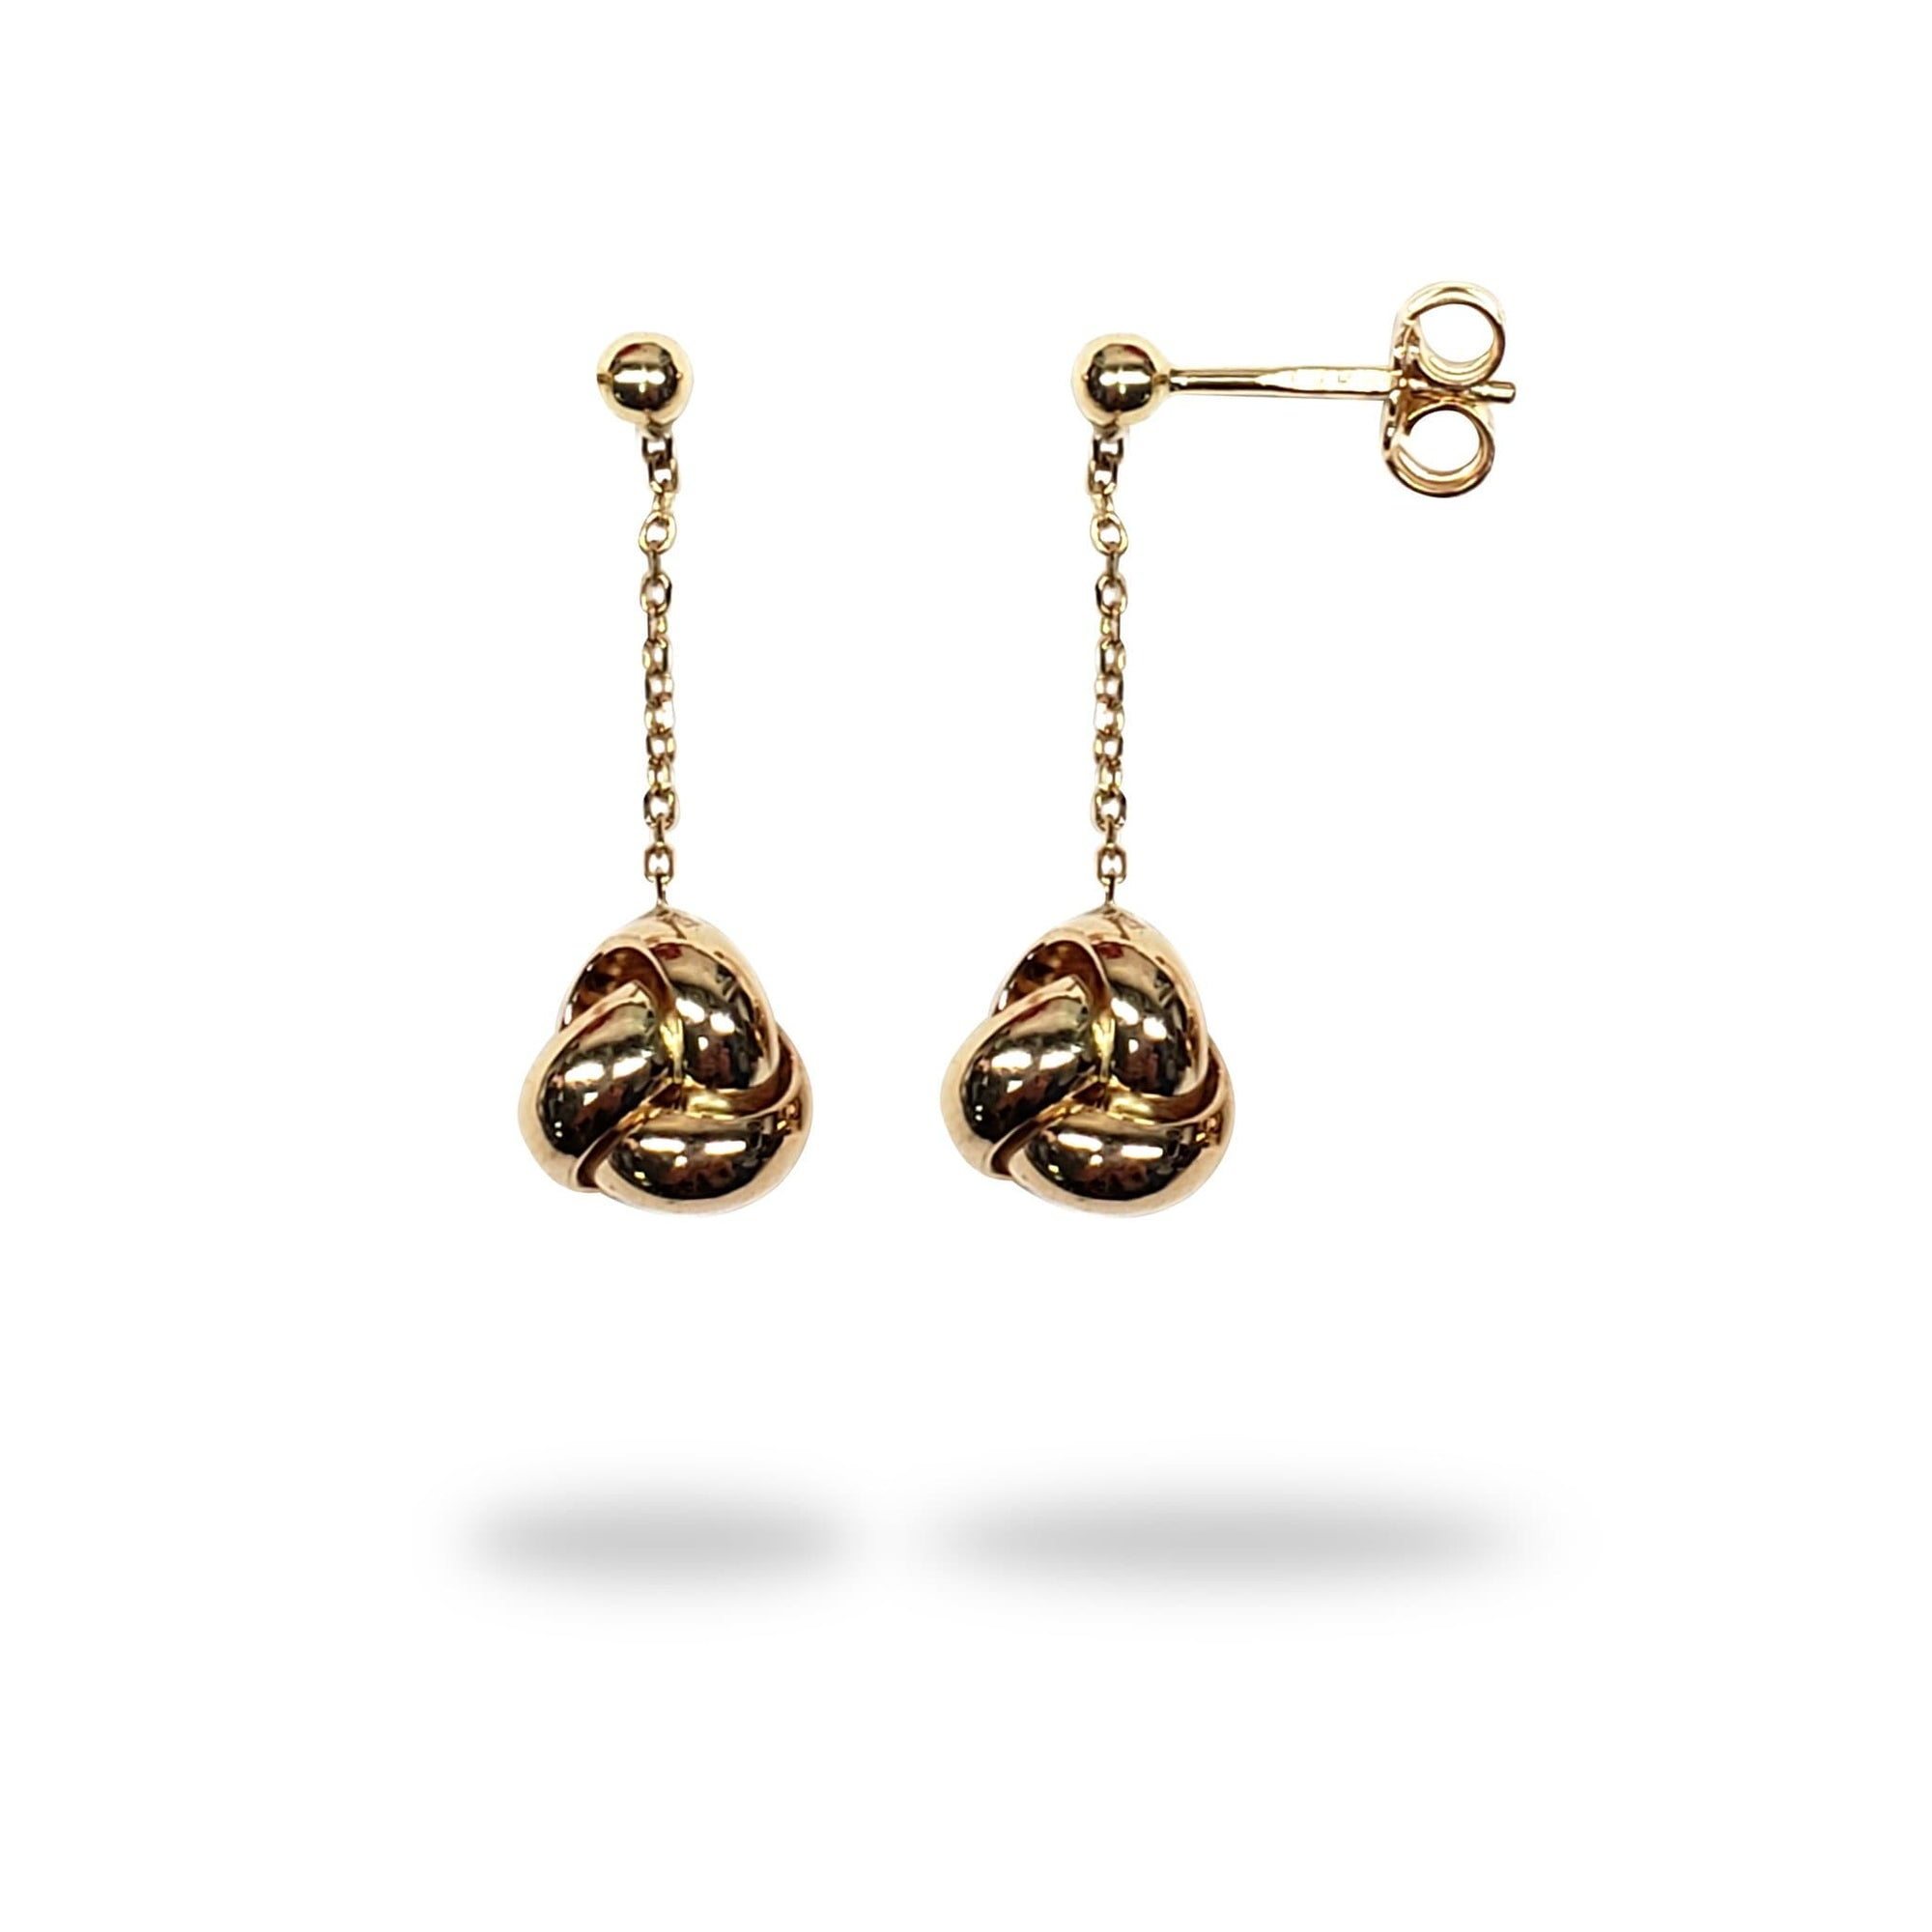 Love Knot Dangle Earrings in 14K Yellow Gold - Maui Divers Jewelry